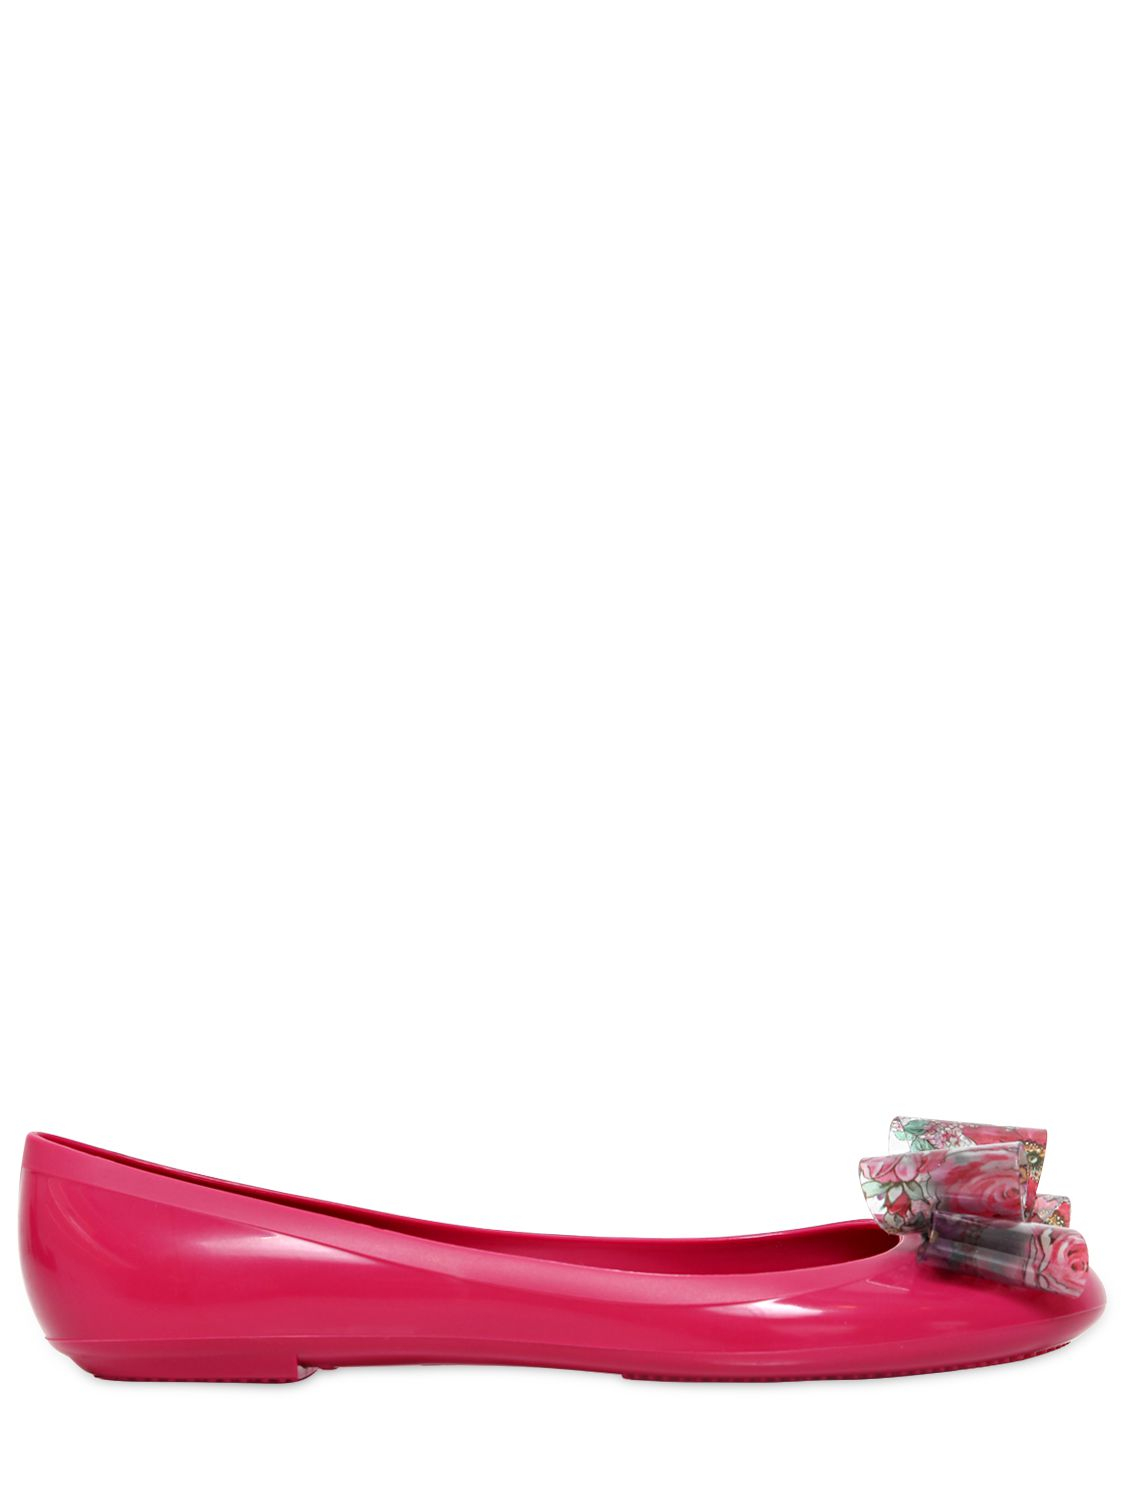 ded1ed75ed01 Lyst - RED Valentino Rubber Ballerina Flats with Floral Bow in Pink